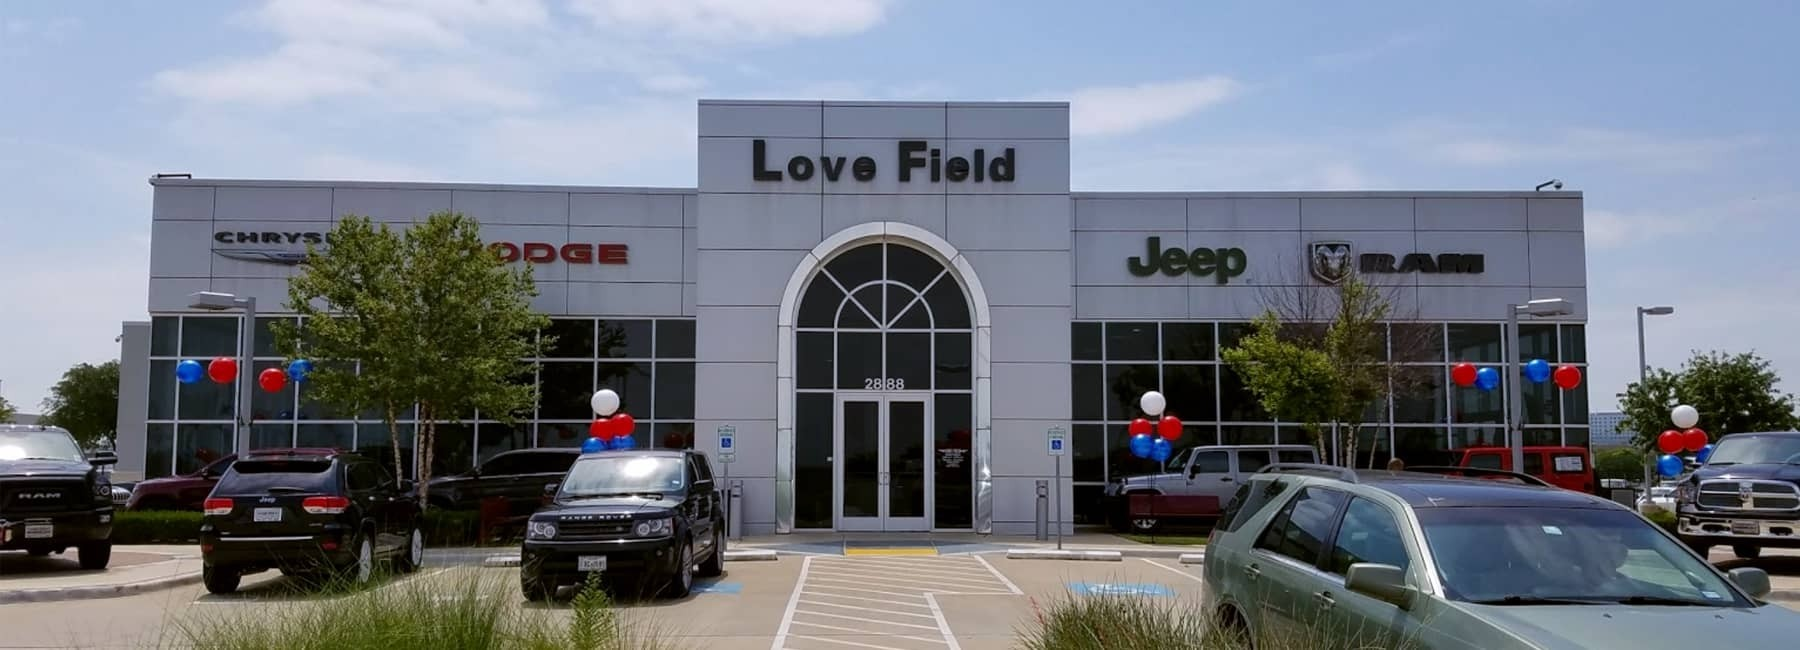 Love Field Dealership